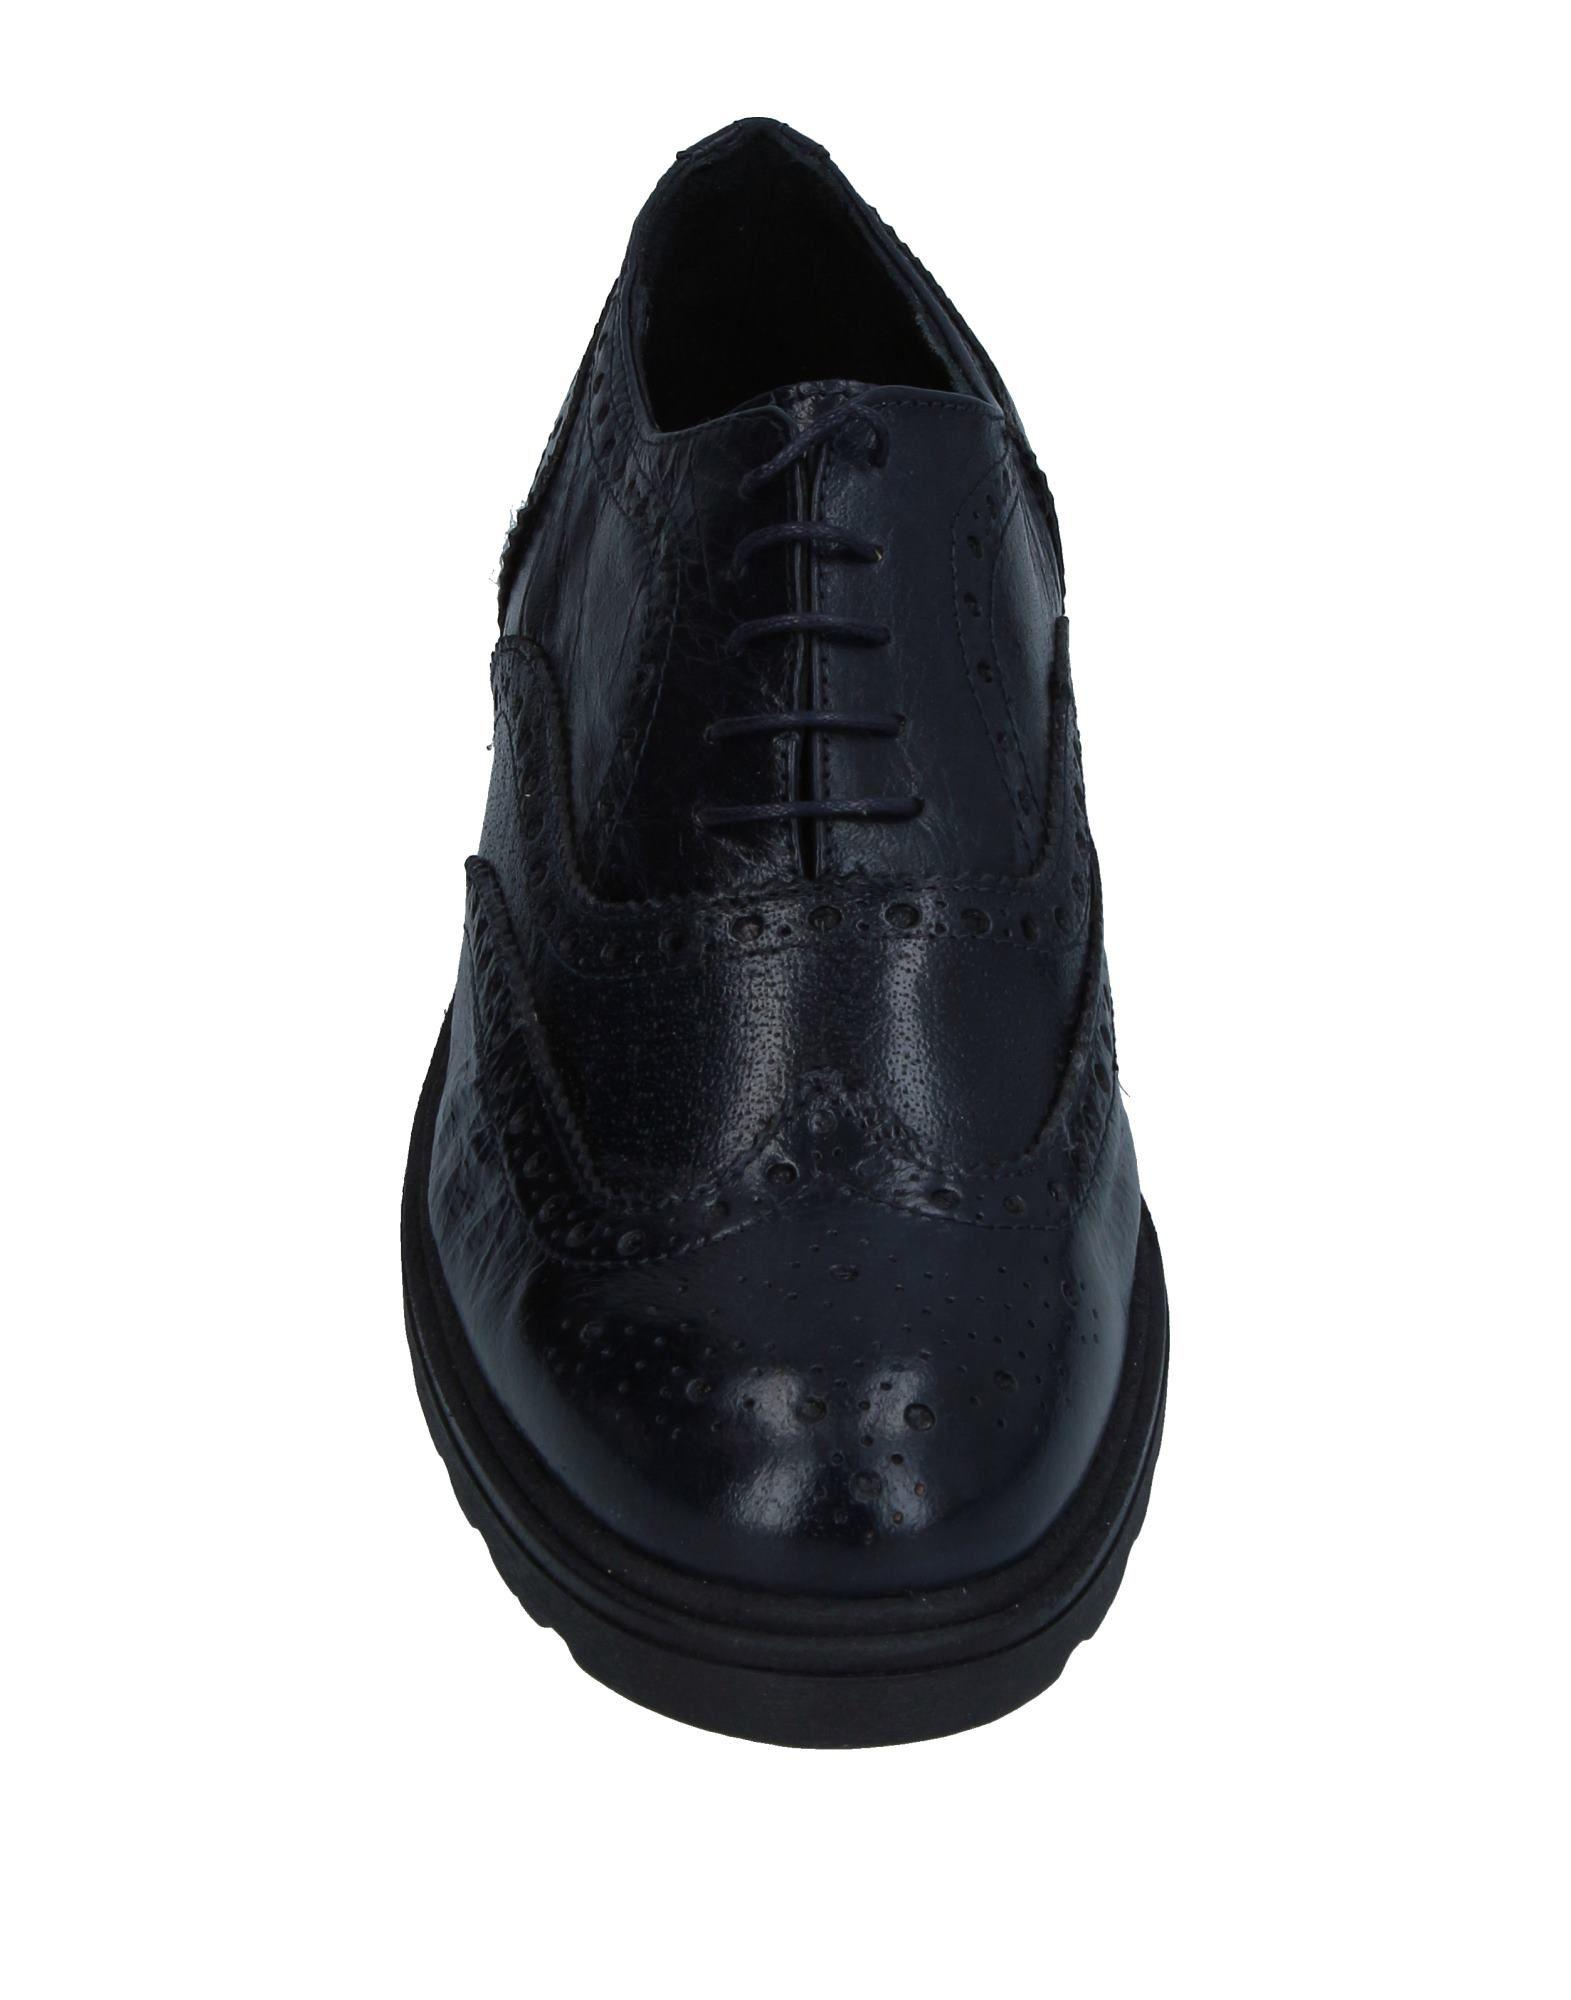 Cianci Leather Lace-up Shoe in Dark Blue (Blue) for Men